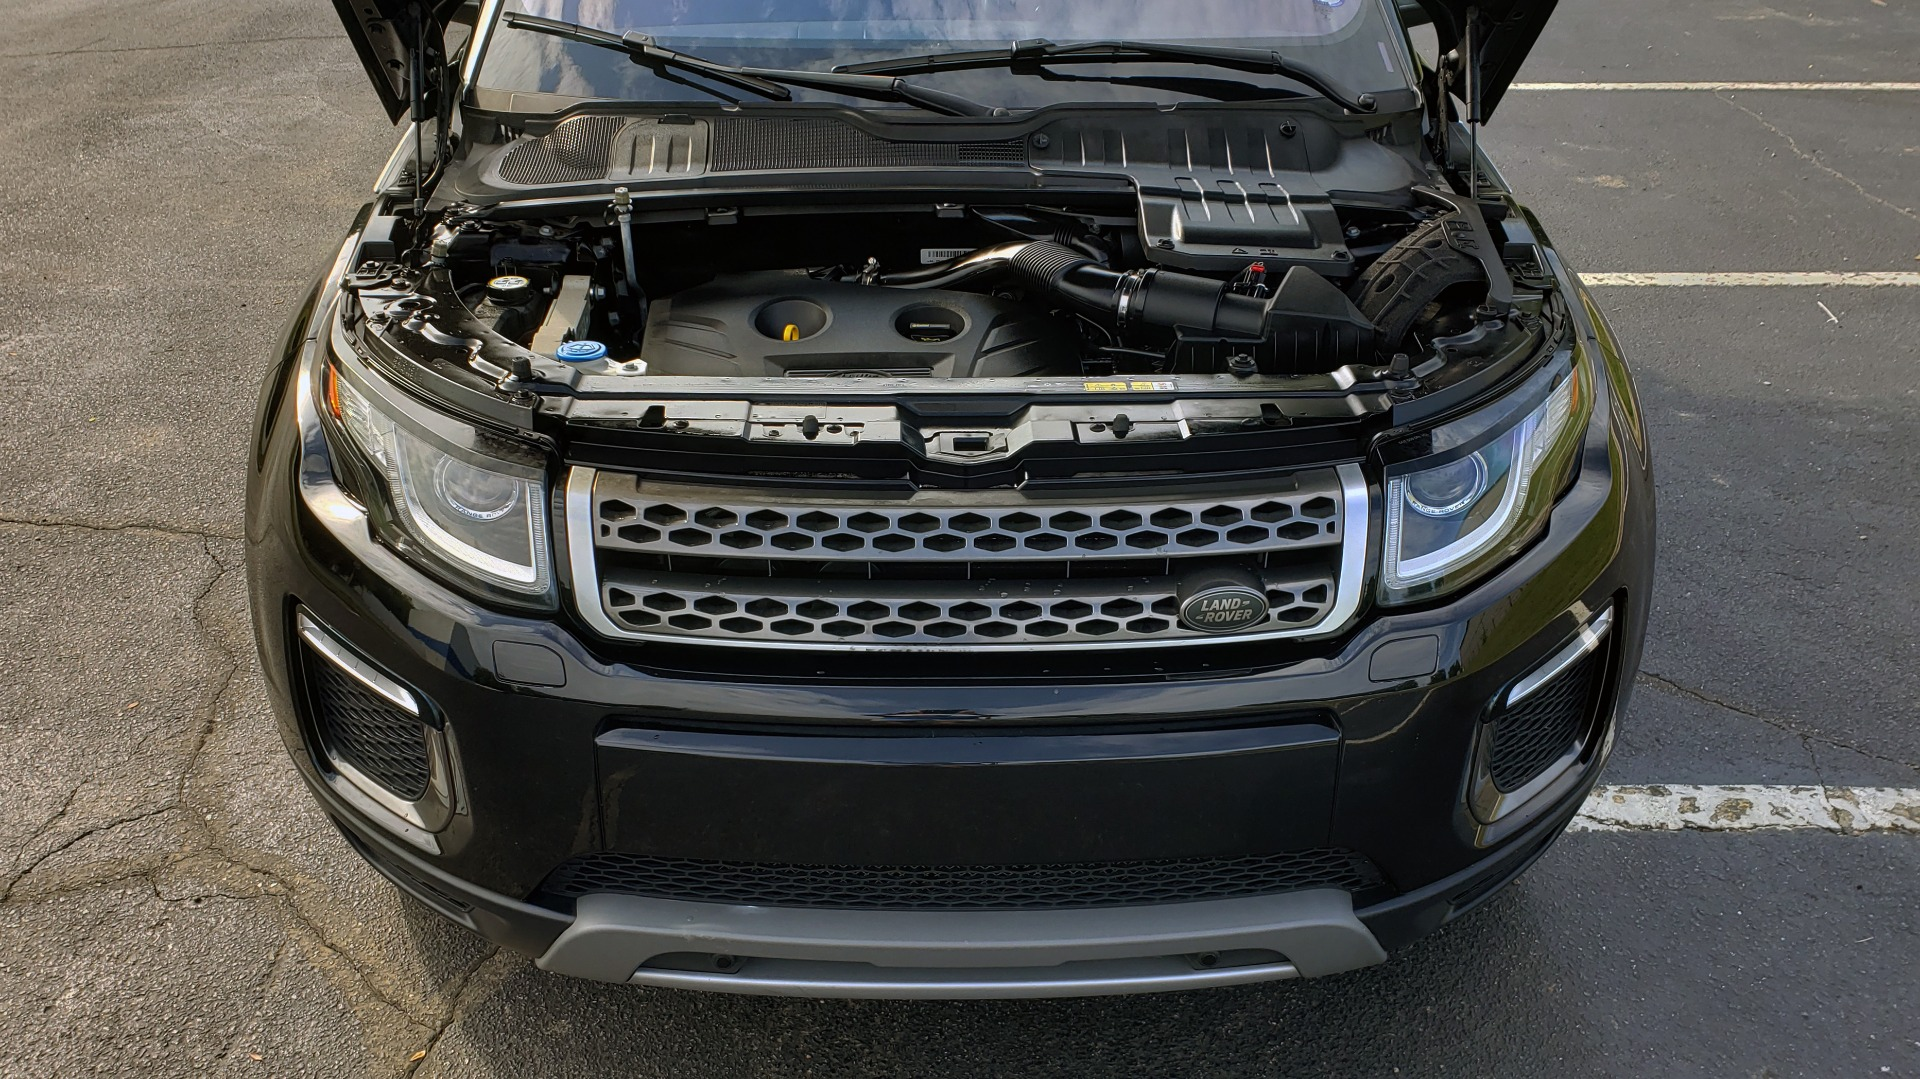 Used 2016 Land Rover RANGE ROVER EVOQUE HSE / AWD / NAV / MERIDIAN / PANO-ROOF / REARVIEW for sale Sold at Formula Imports in Charlotte NC 28227 10